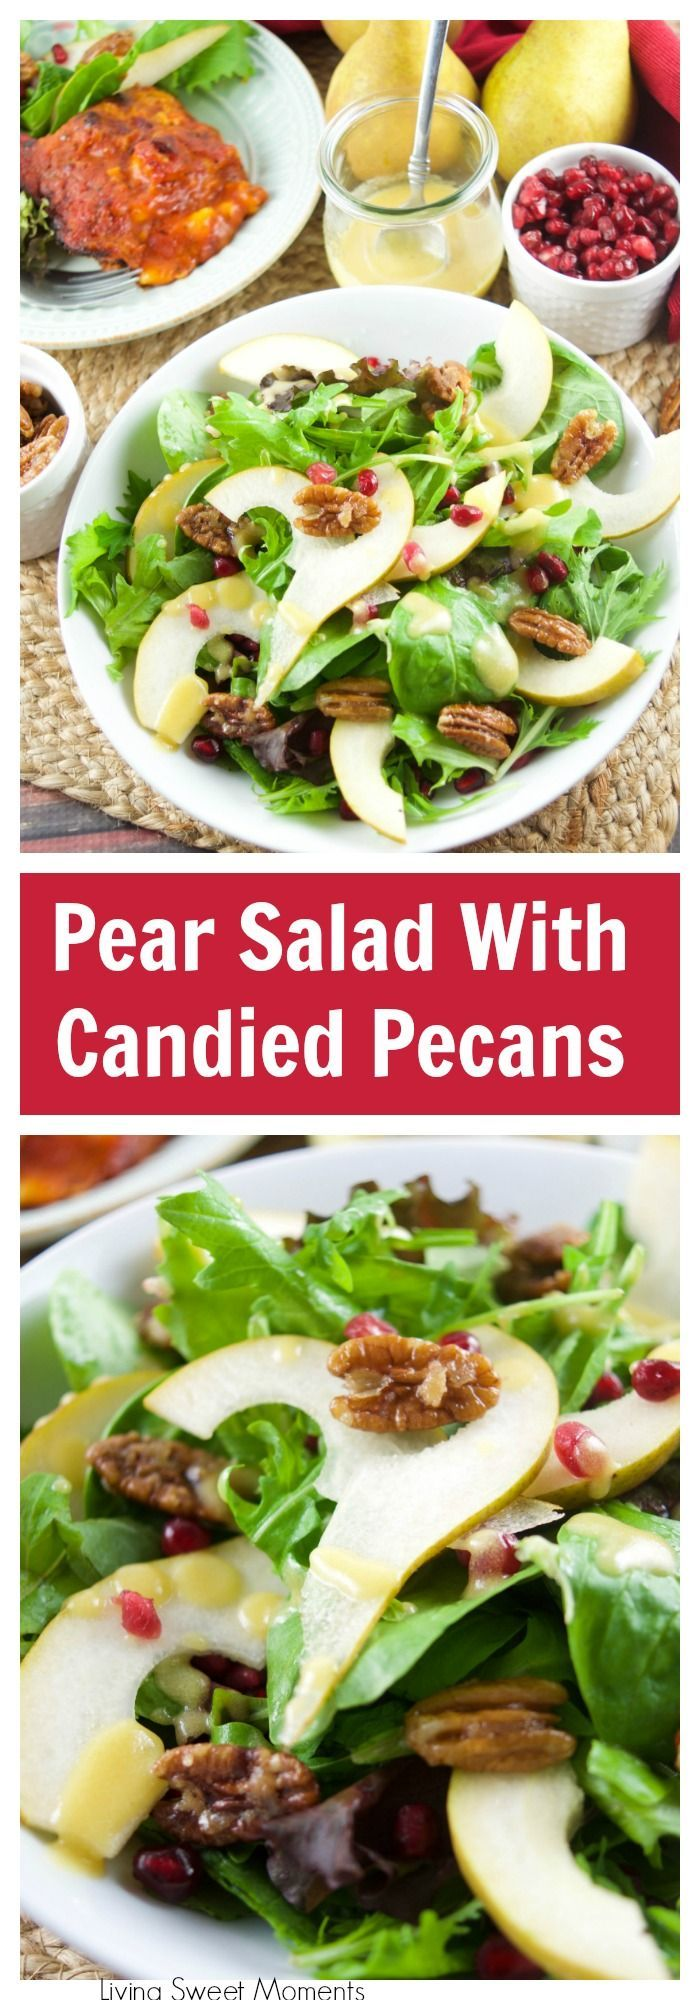 This tasty pomegranate Pear Salad is served with candied pecans and drizzled with a mustard dressing. The perfect autumn quick salad to serve with dinner. More salad recipes at livingsweetmoments.com  via @Livingsmoments #BalanceYourPlate #ad